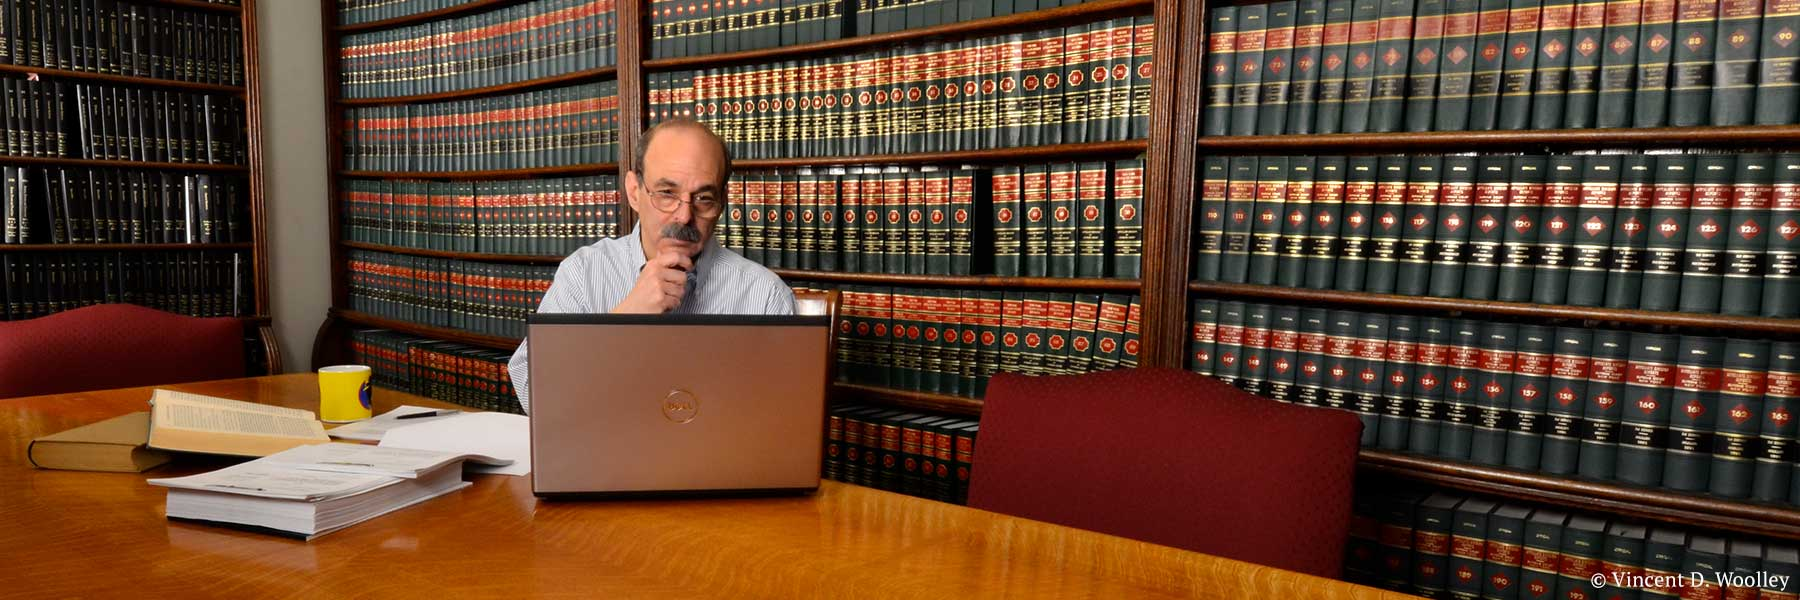 Warren County, New York attorney Neil H. Lebowitz conducting legal research in law library. Photographer: Vincent D. Woolley. Copyright owner-licensor: Vincent D. Woolley. Copyright licensee: Neil H. Lebowitz.